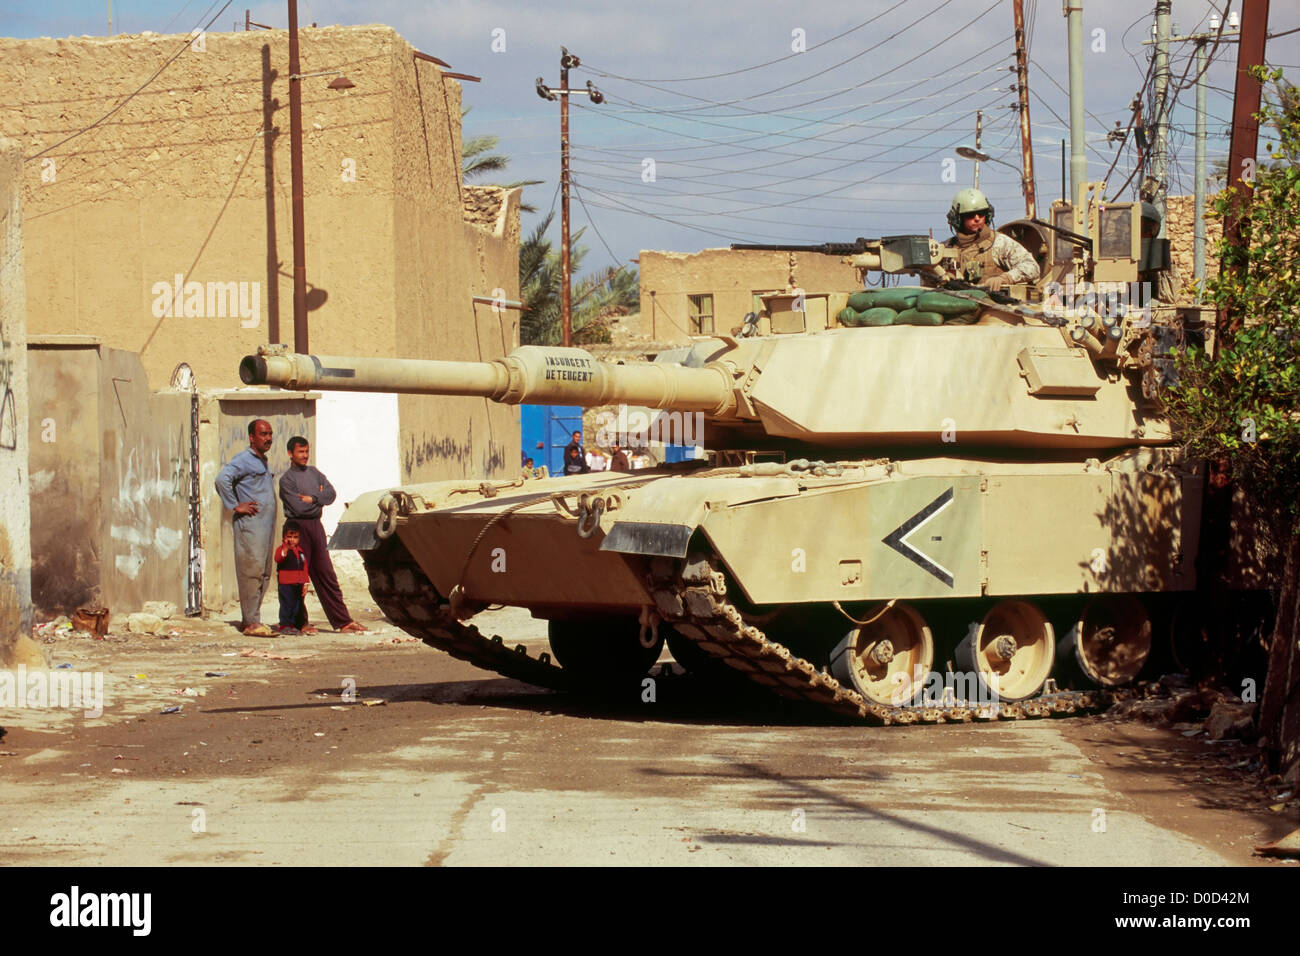 Locals Gaze at a Passing Marine Corps Tank During a Combat Operation in Haqlaniyah, Iraq - Stock Image